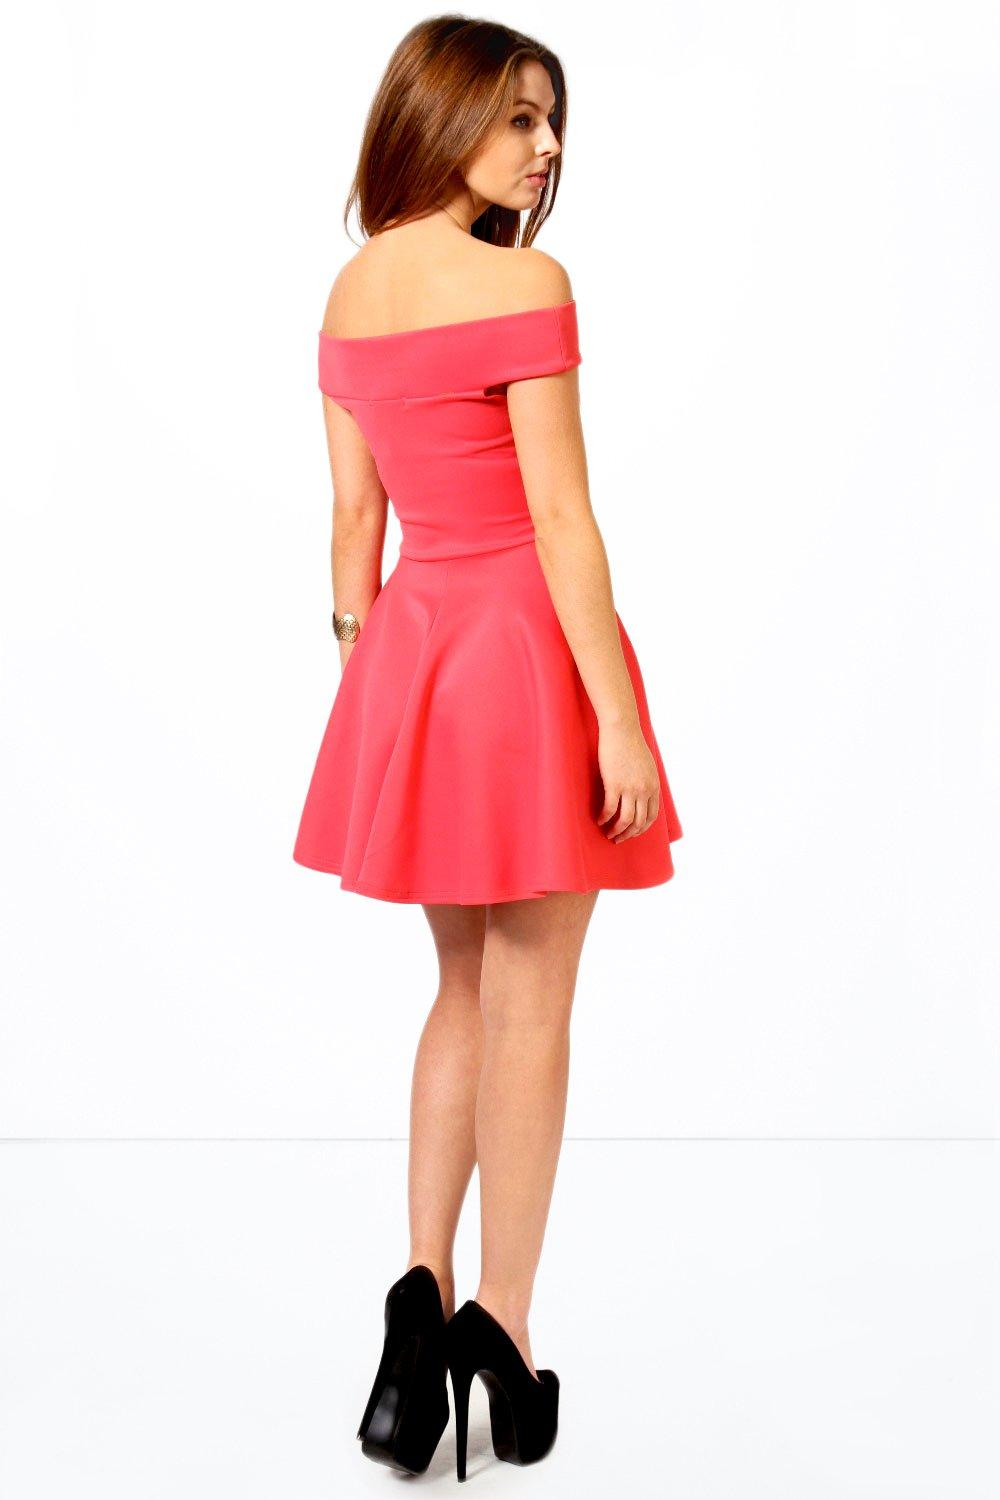 Boohoo Womens Tamsin Off The Shoulder Skater Dress